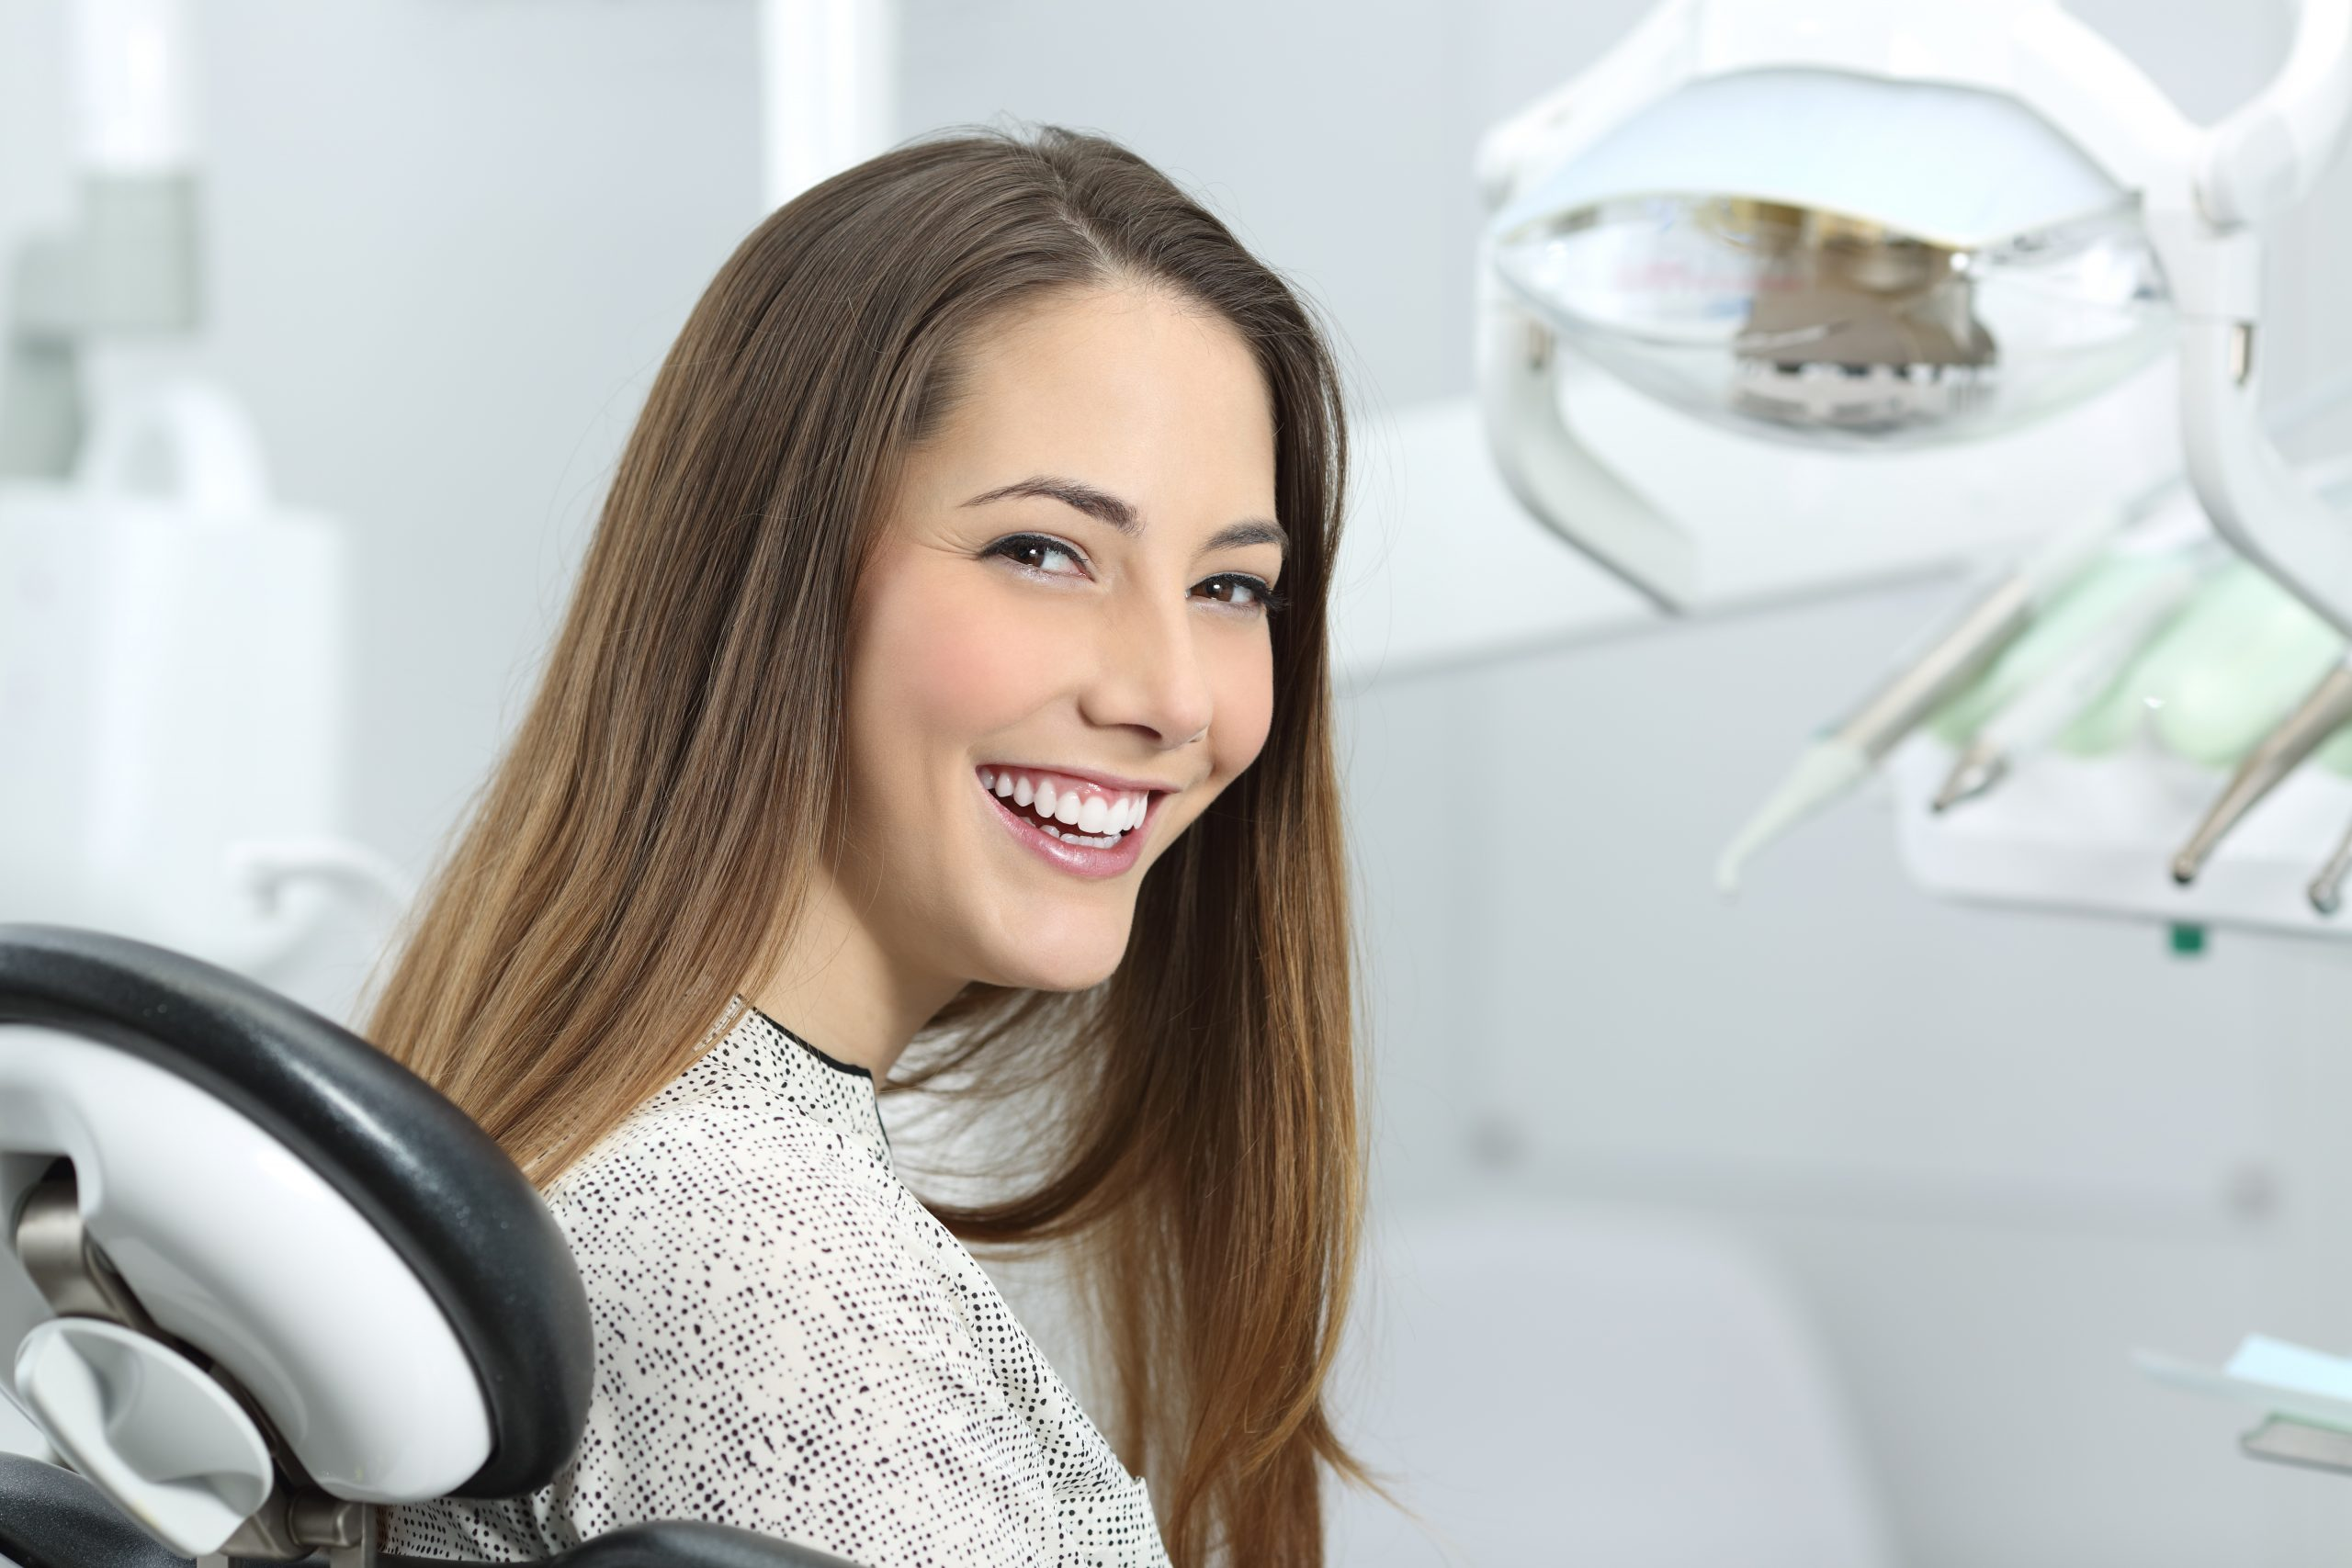 Cosmetic Dentisty prices with Finance at Harley St Smile Clinic